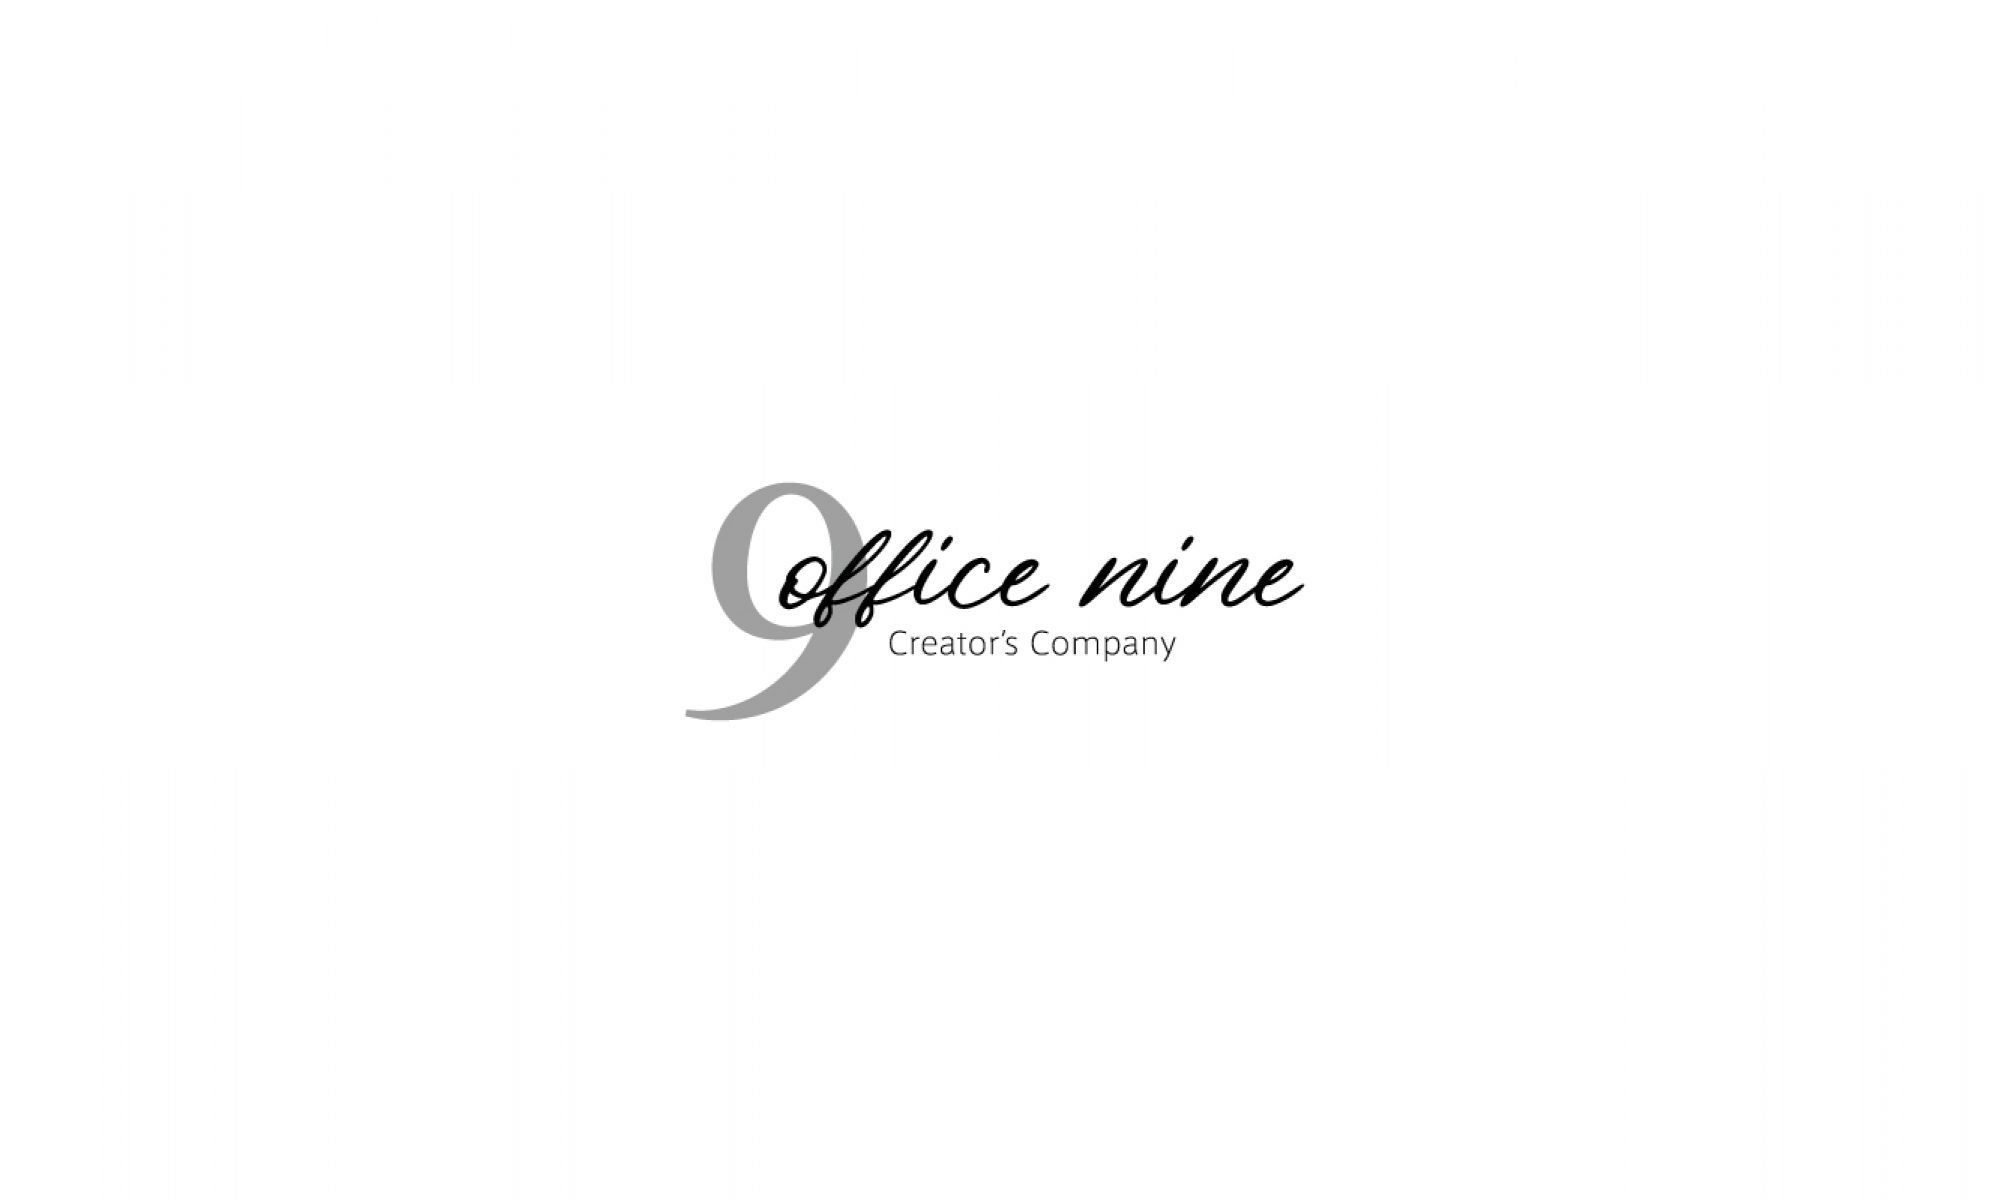 OFFICE NINE